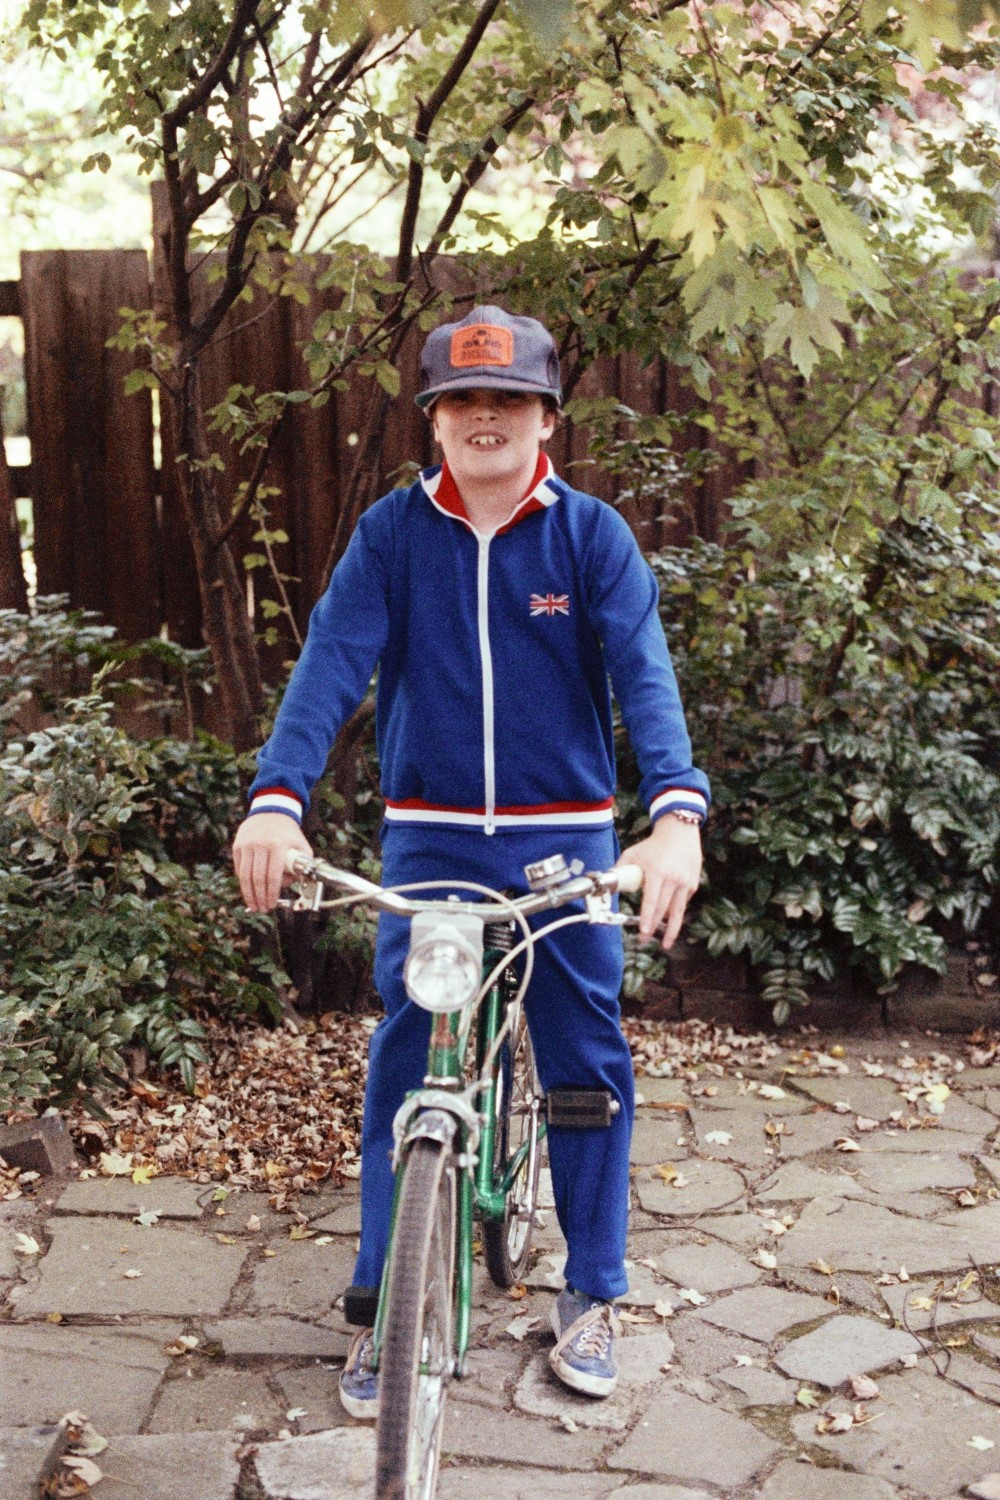 Russel Shearer at the age of 9, on the TEMPO Bike